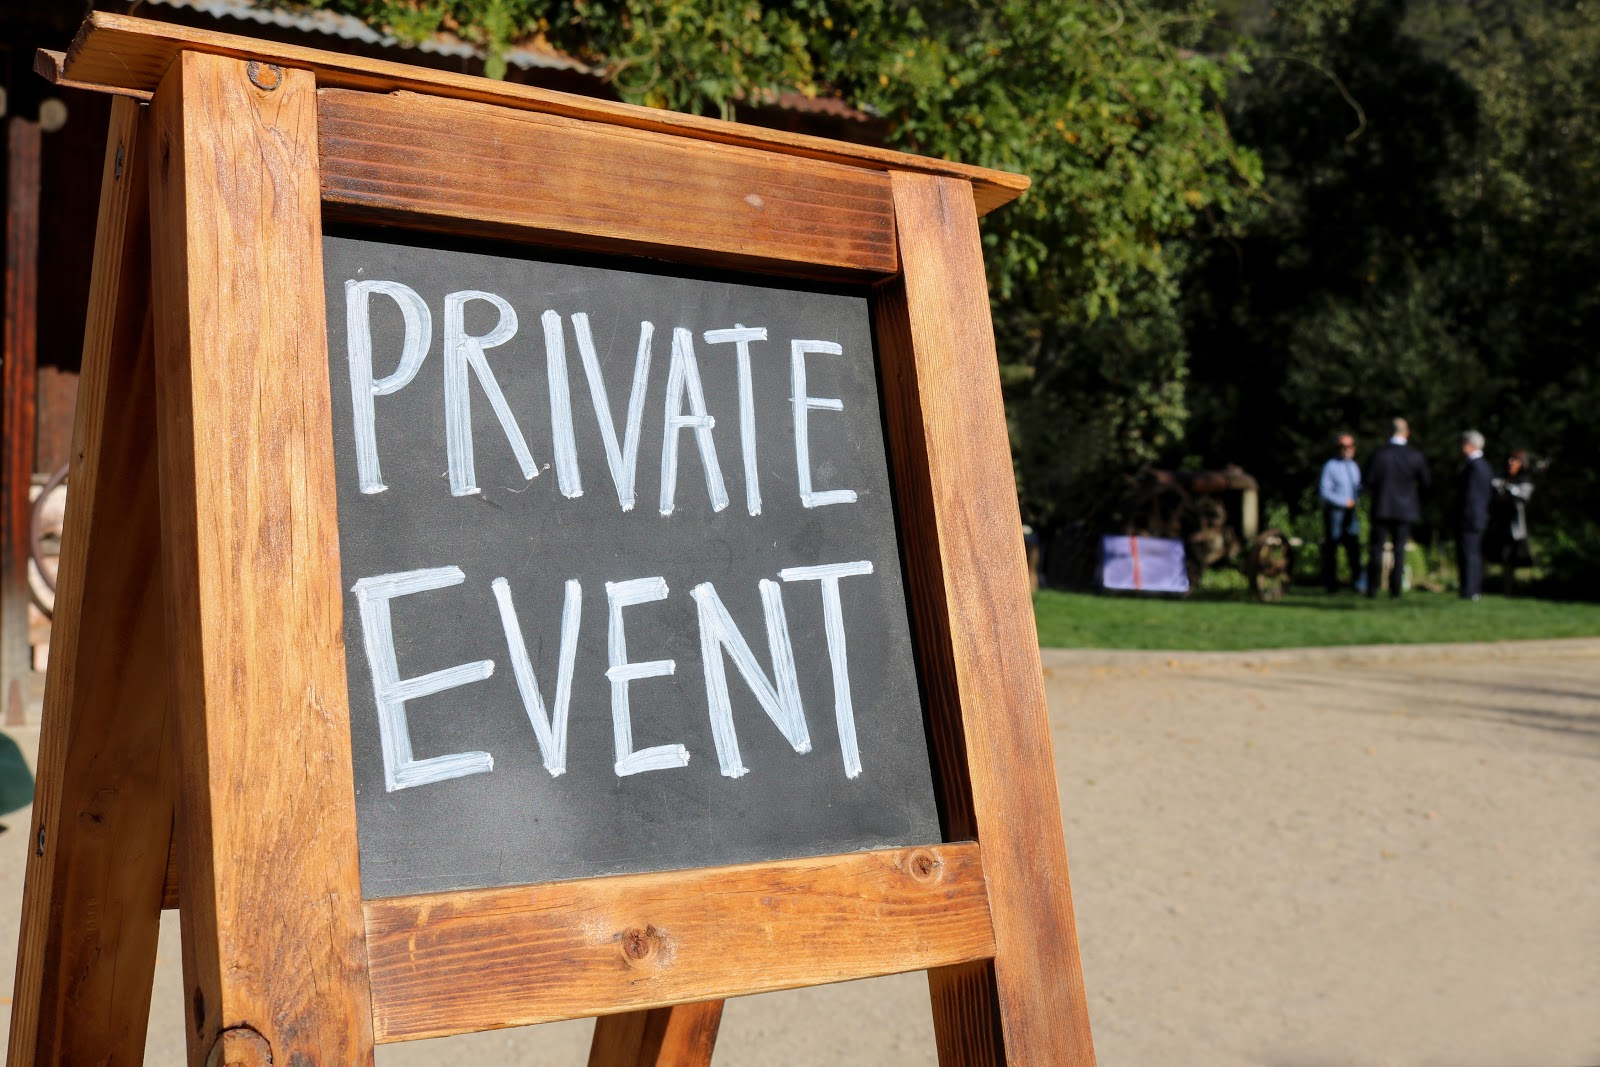 Private event signage at a groundbreaking ceremony